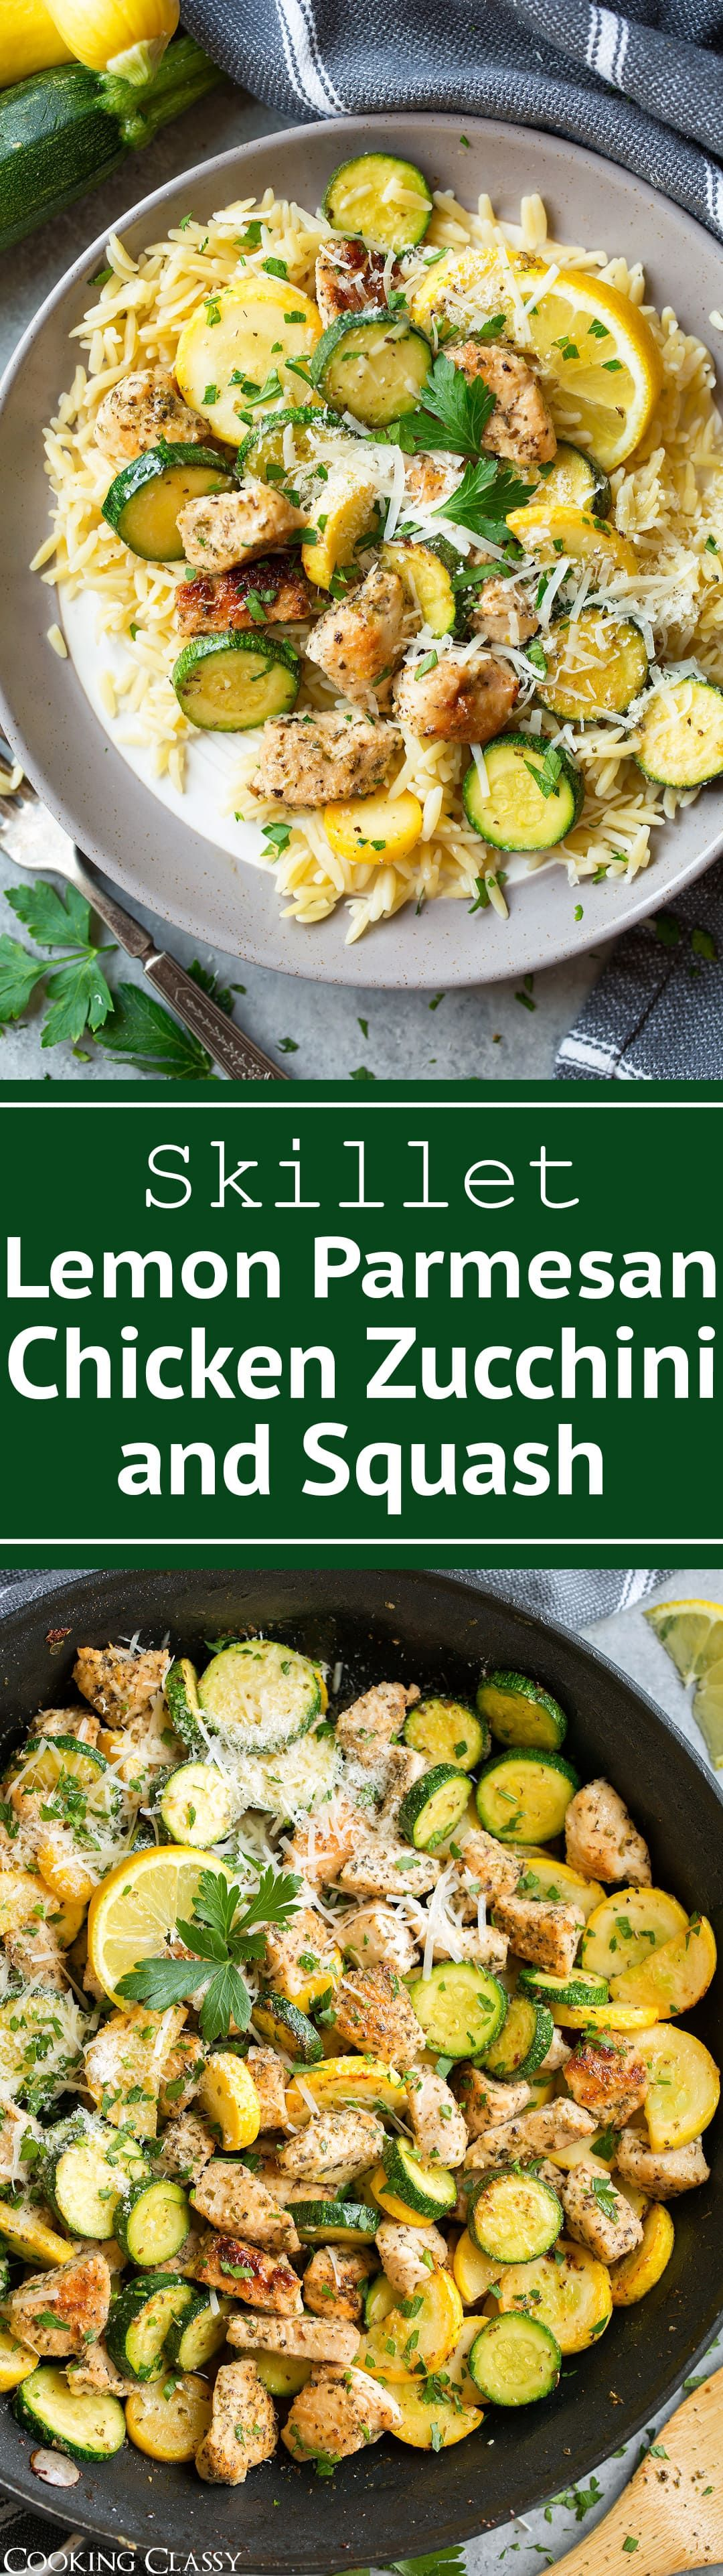 Lemon Parmesan Chicken With Zucchini And Squash The Perfect Flavorful One Pan Dinner A Recipe Everyone In The Whol Chicken Recipes Recipes Healthy Recipes